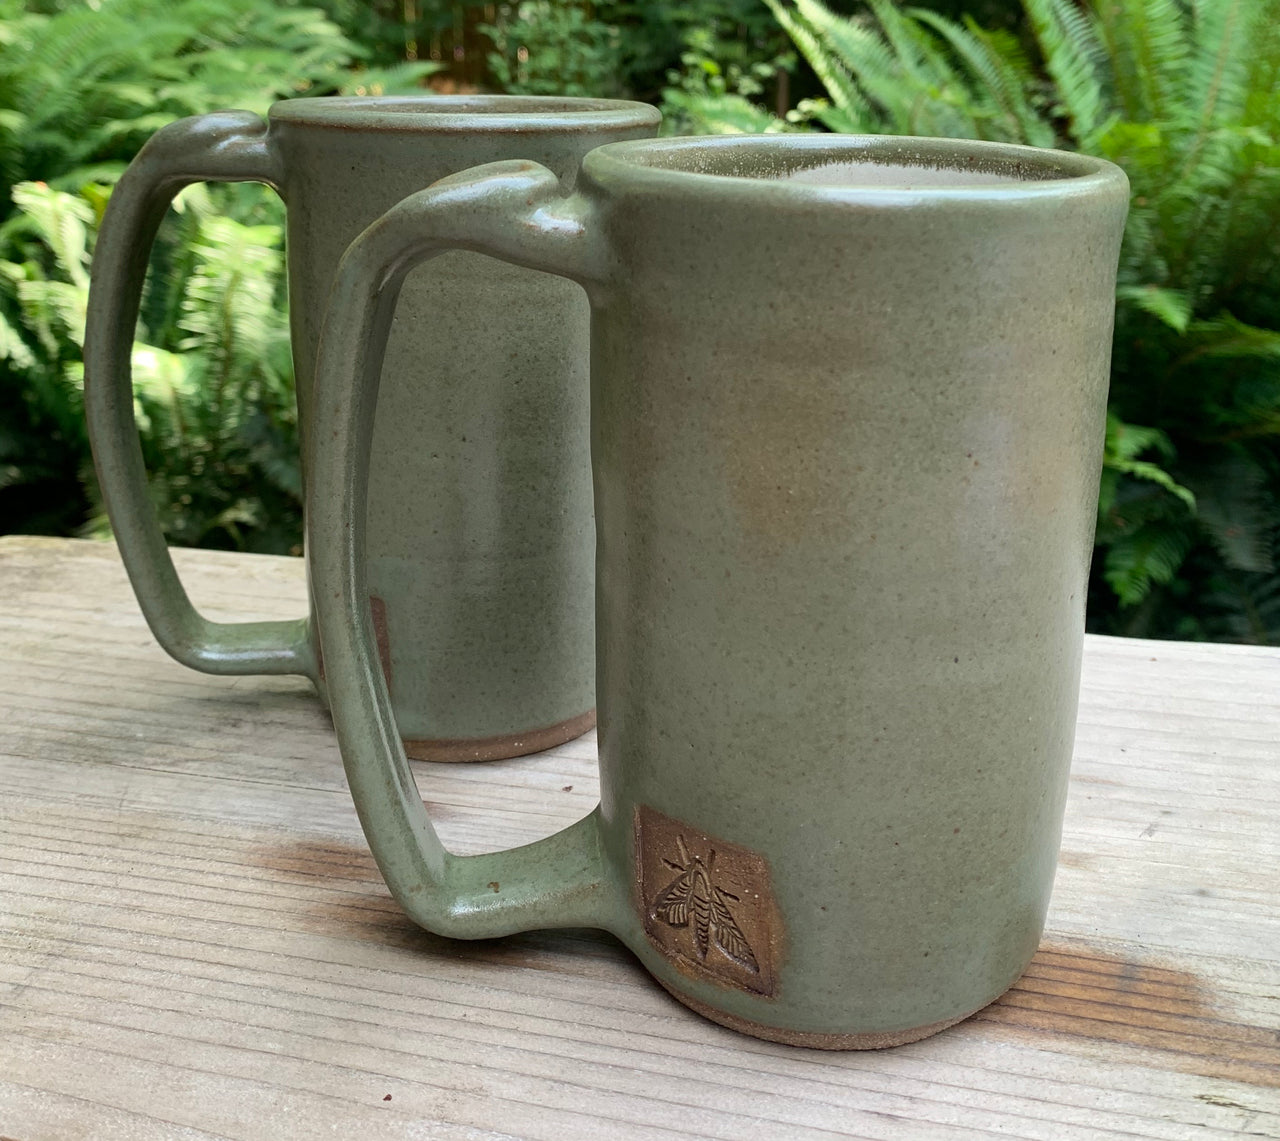 Sfingiday Beer / Coffee Stein